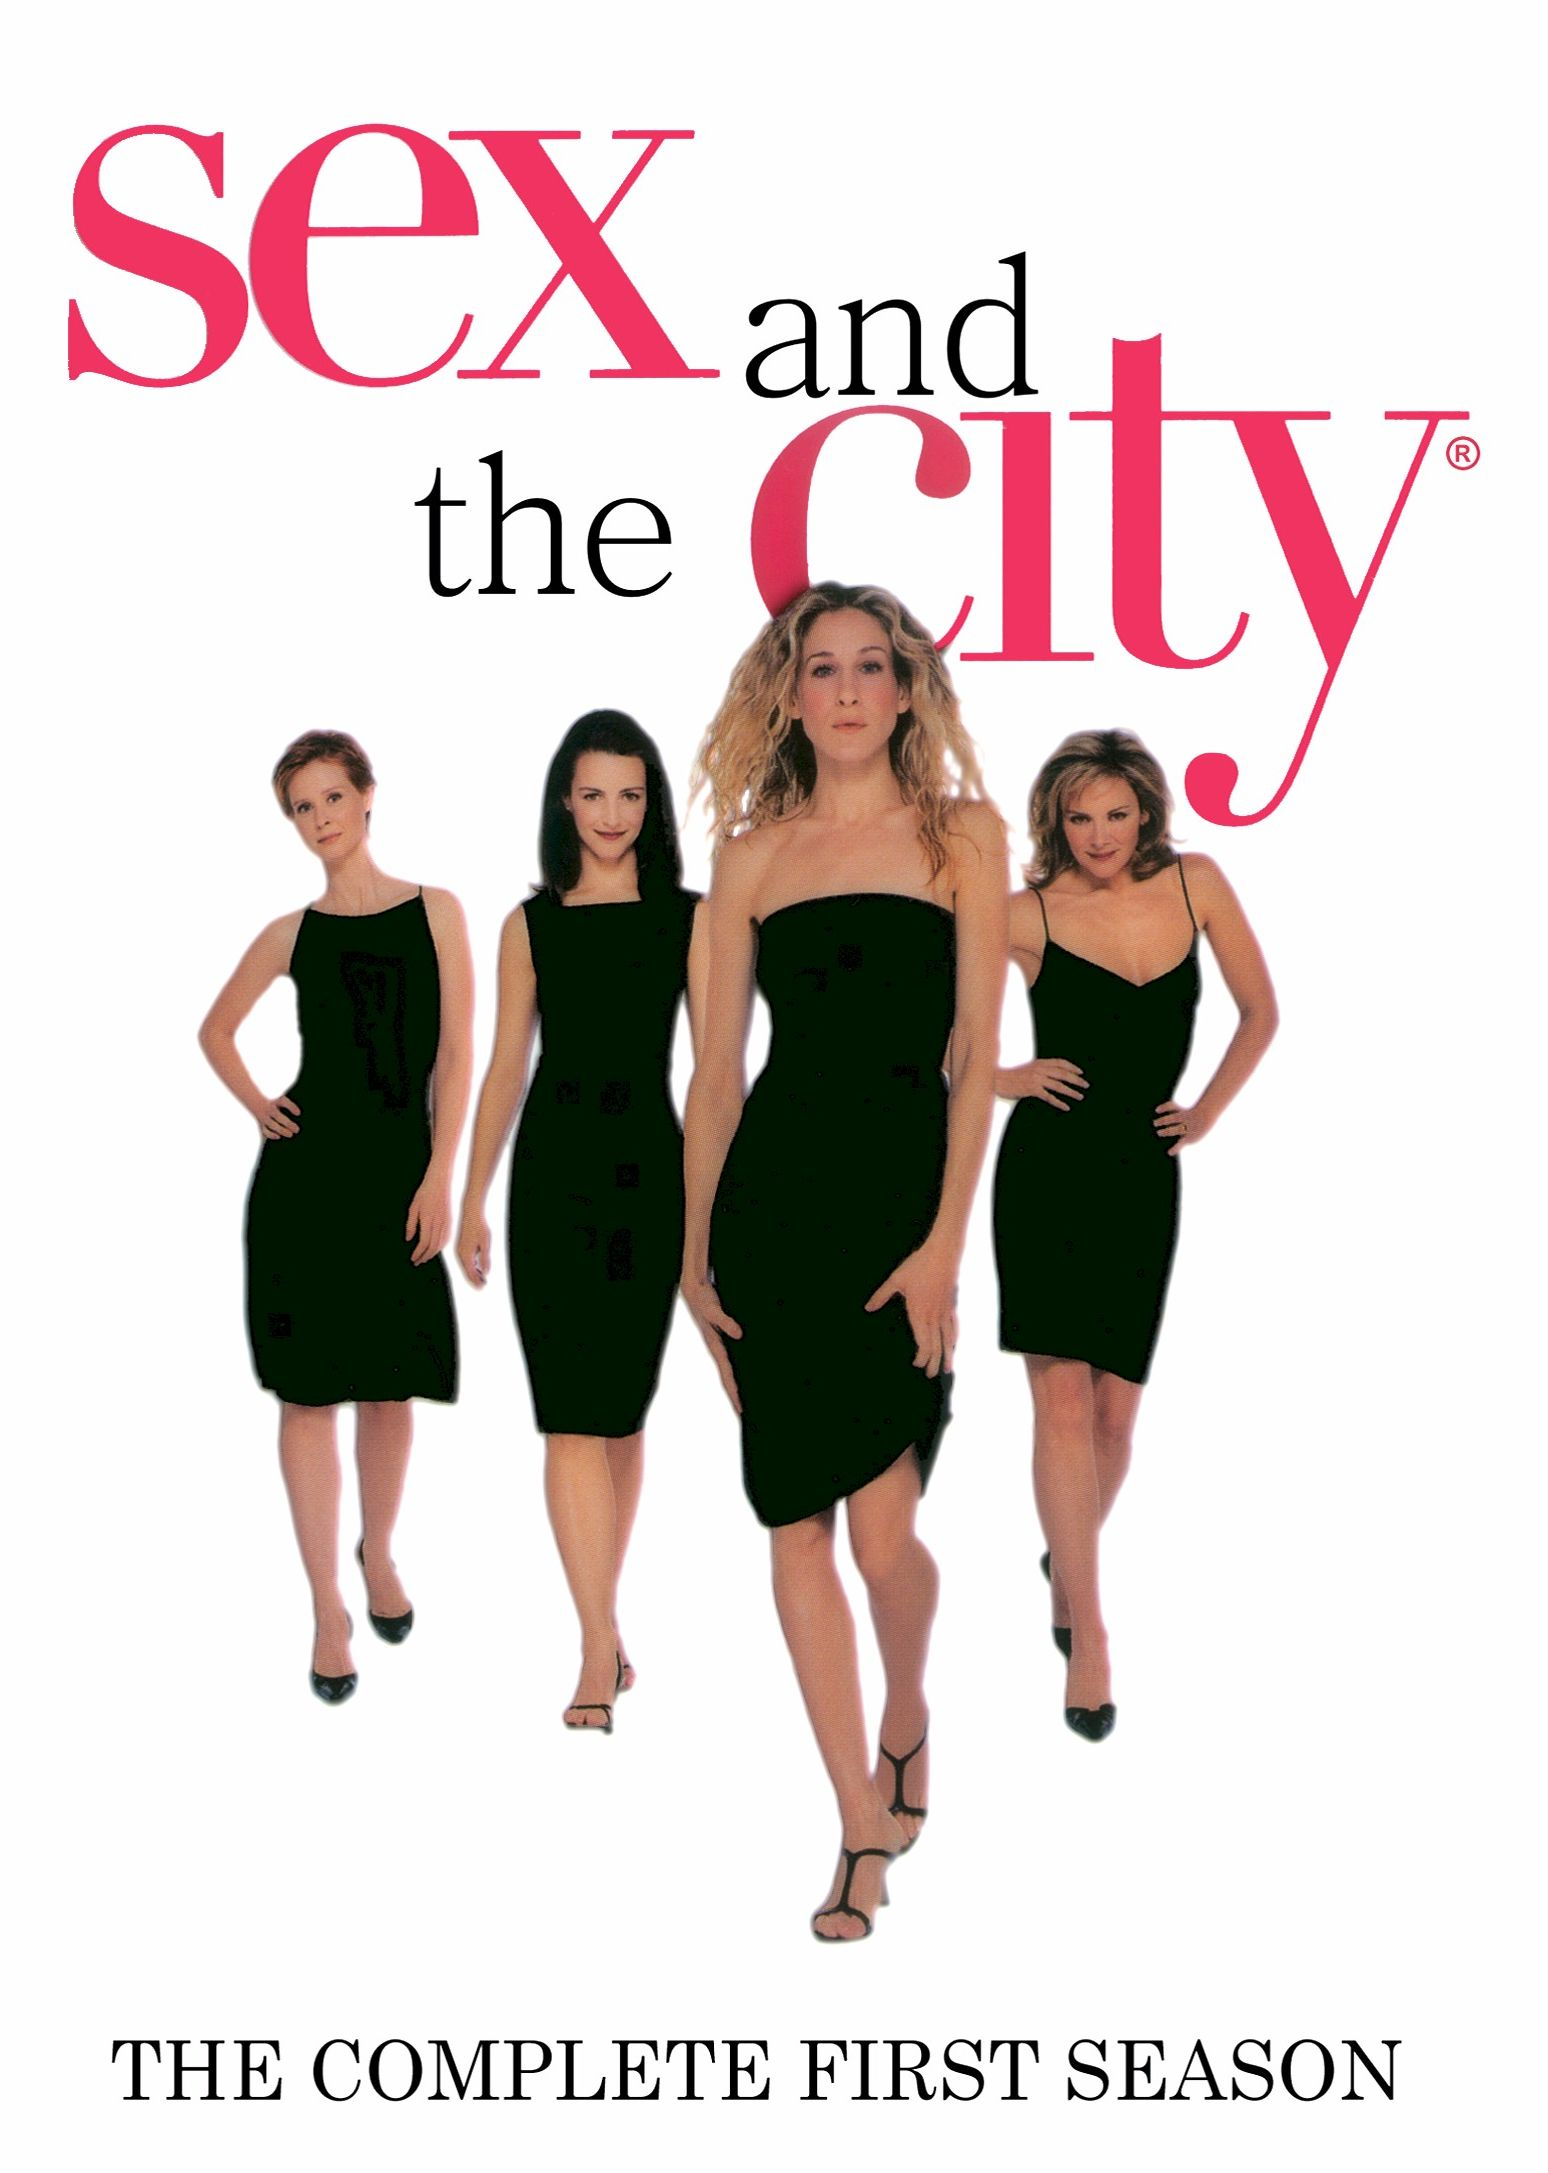 Sex and the city season 3 megaupload